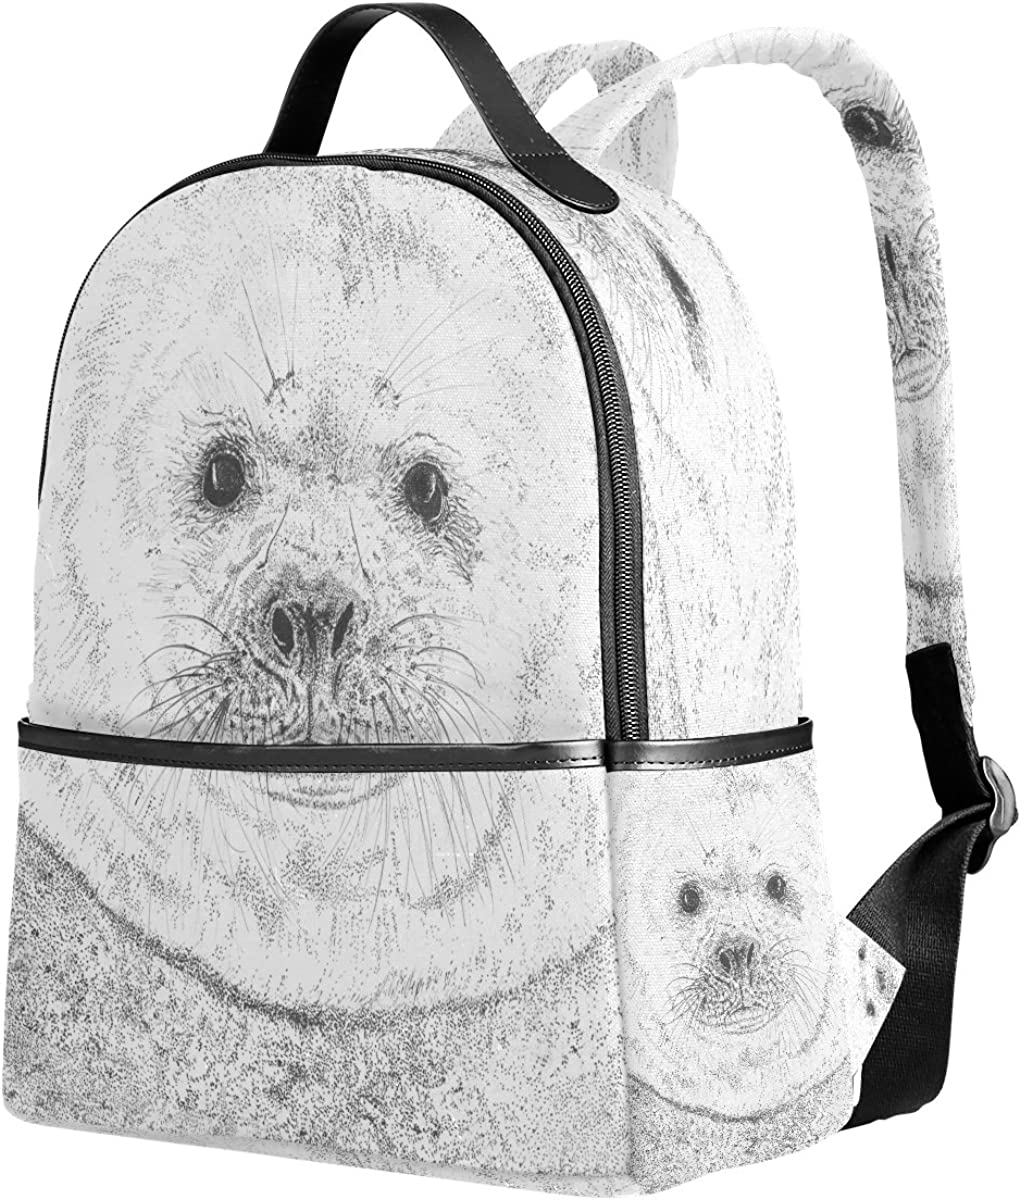 Mr.Weng Small Seals Printed Canvas Backpack For Girl and Children